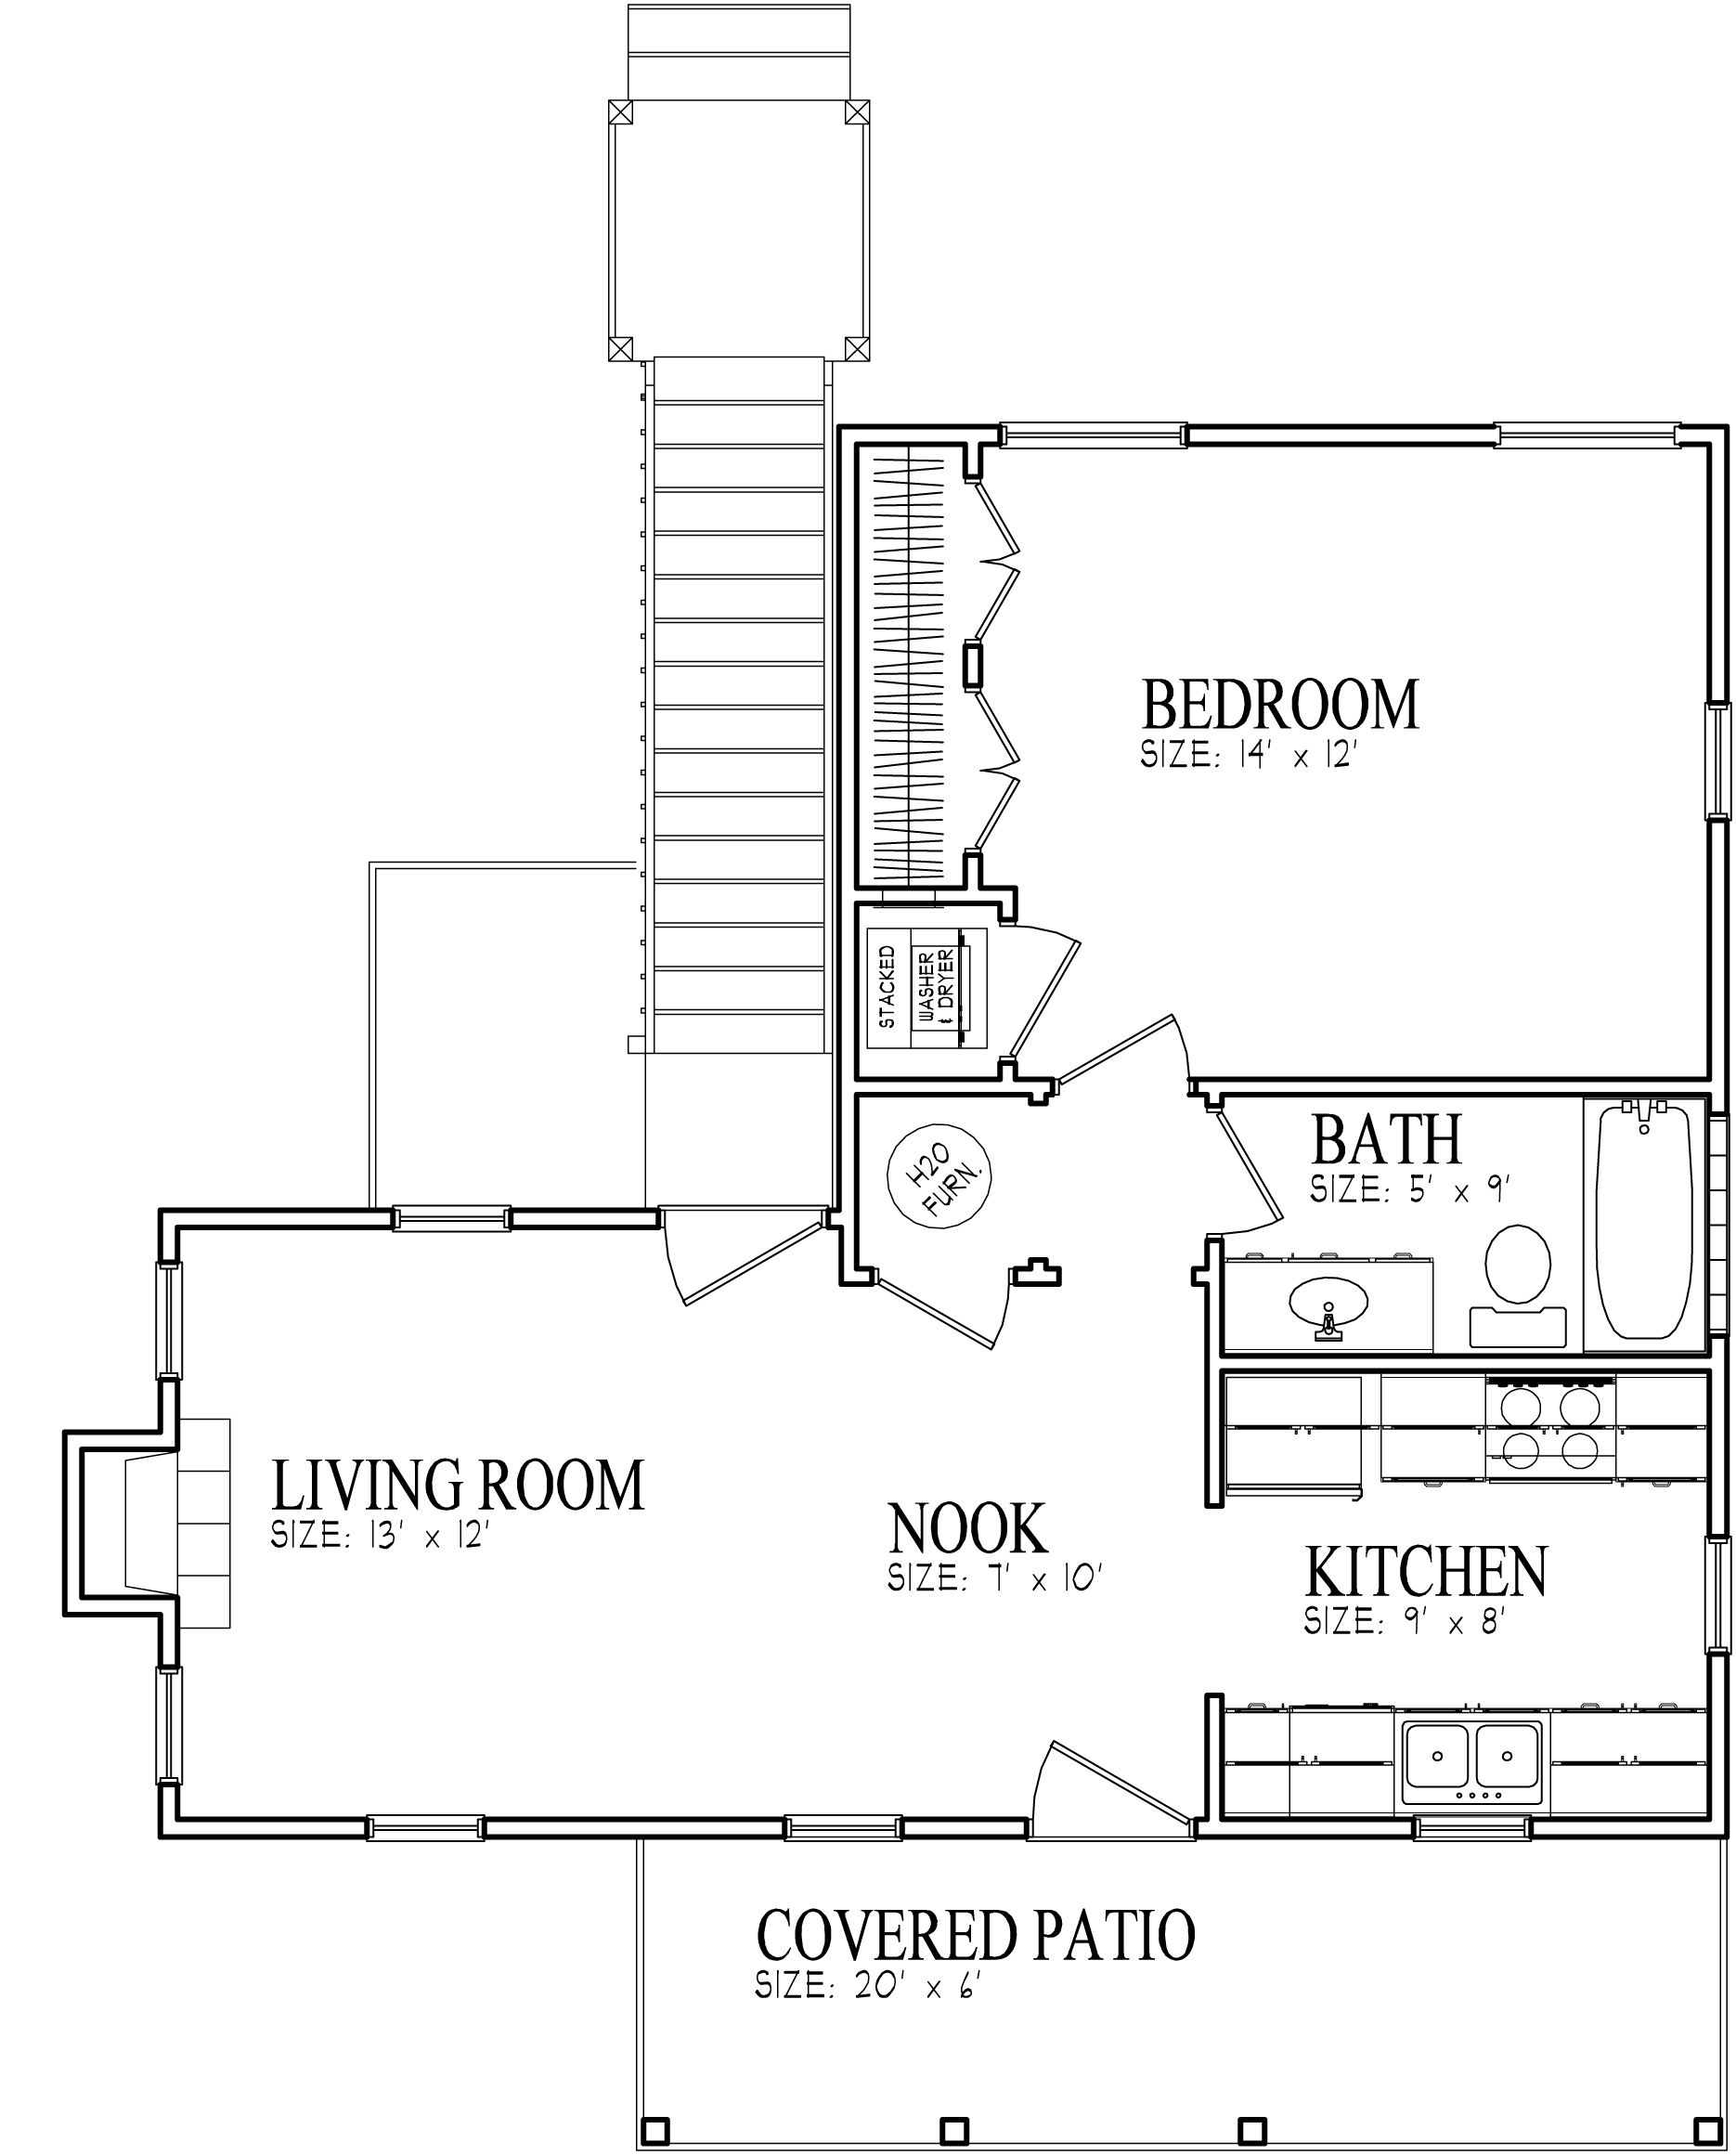 1bed 1bath Available For Rent In 2bhk Apartment In Elan: Floor Plan Name: Cottages At MeadowCreek 1 Bedroom, 1